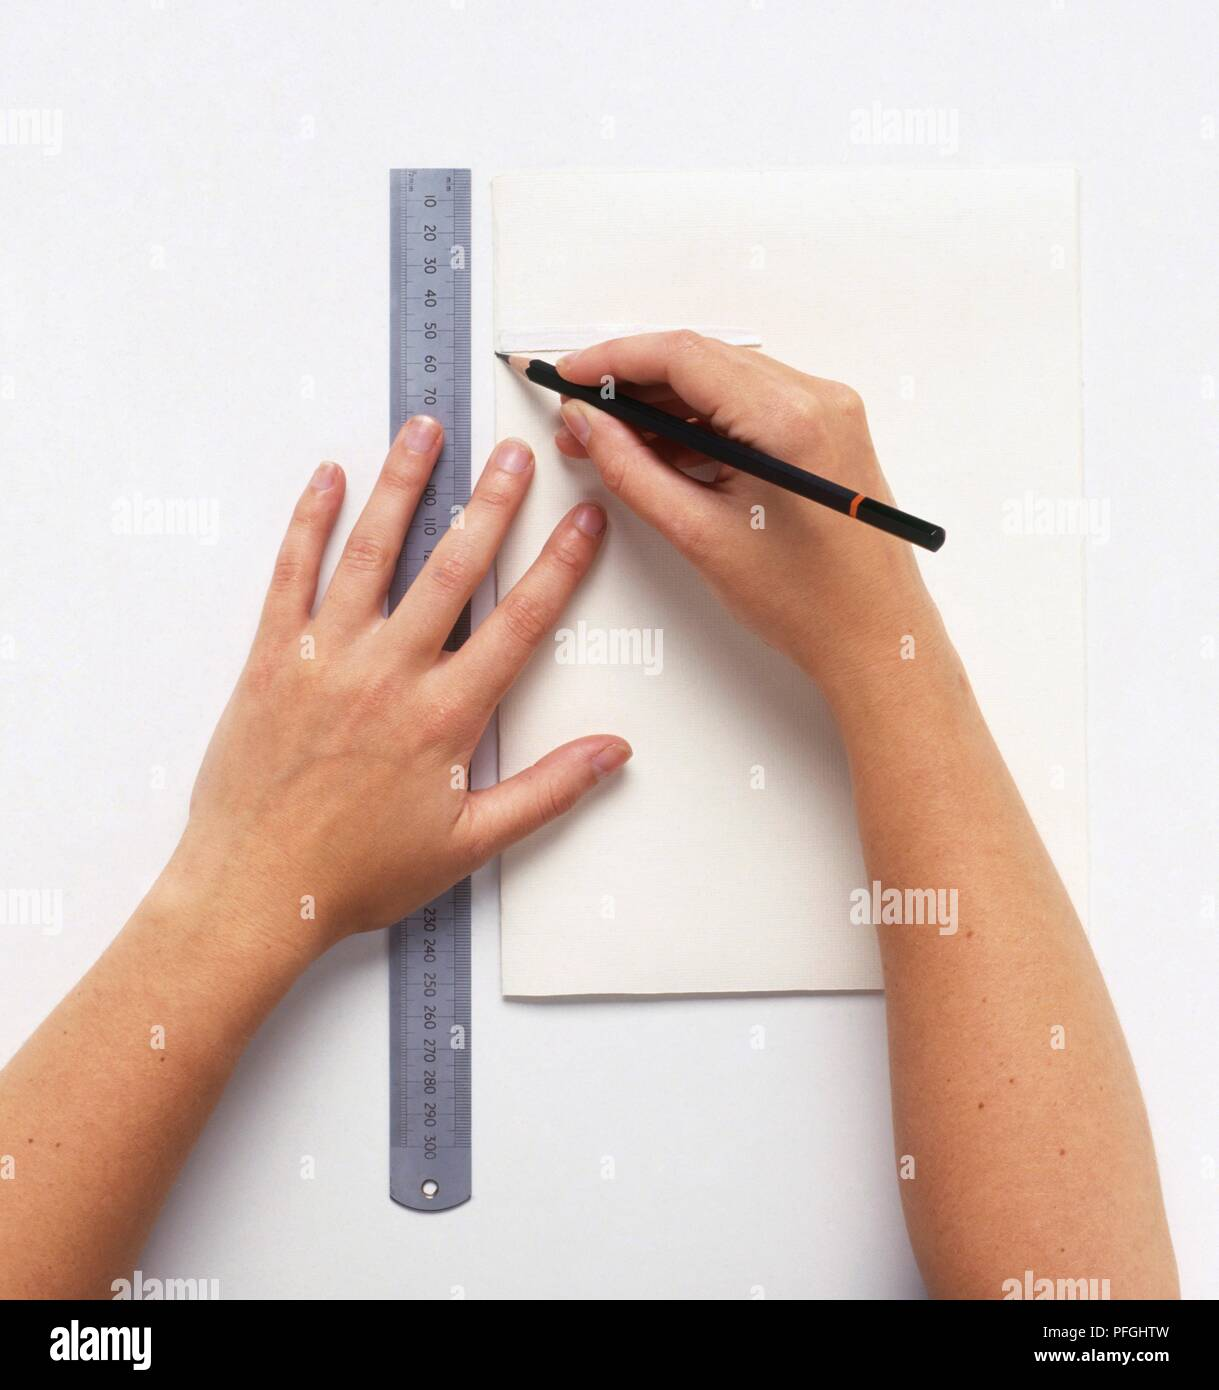 Making a sketchbook, marking width of binding tape using ruler and pencil, close-up - Stock Image